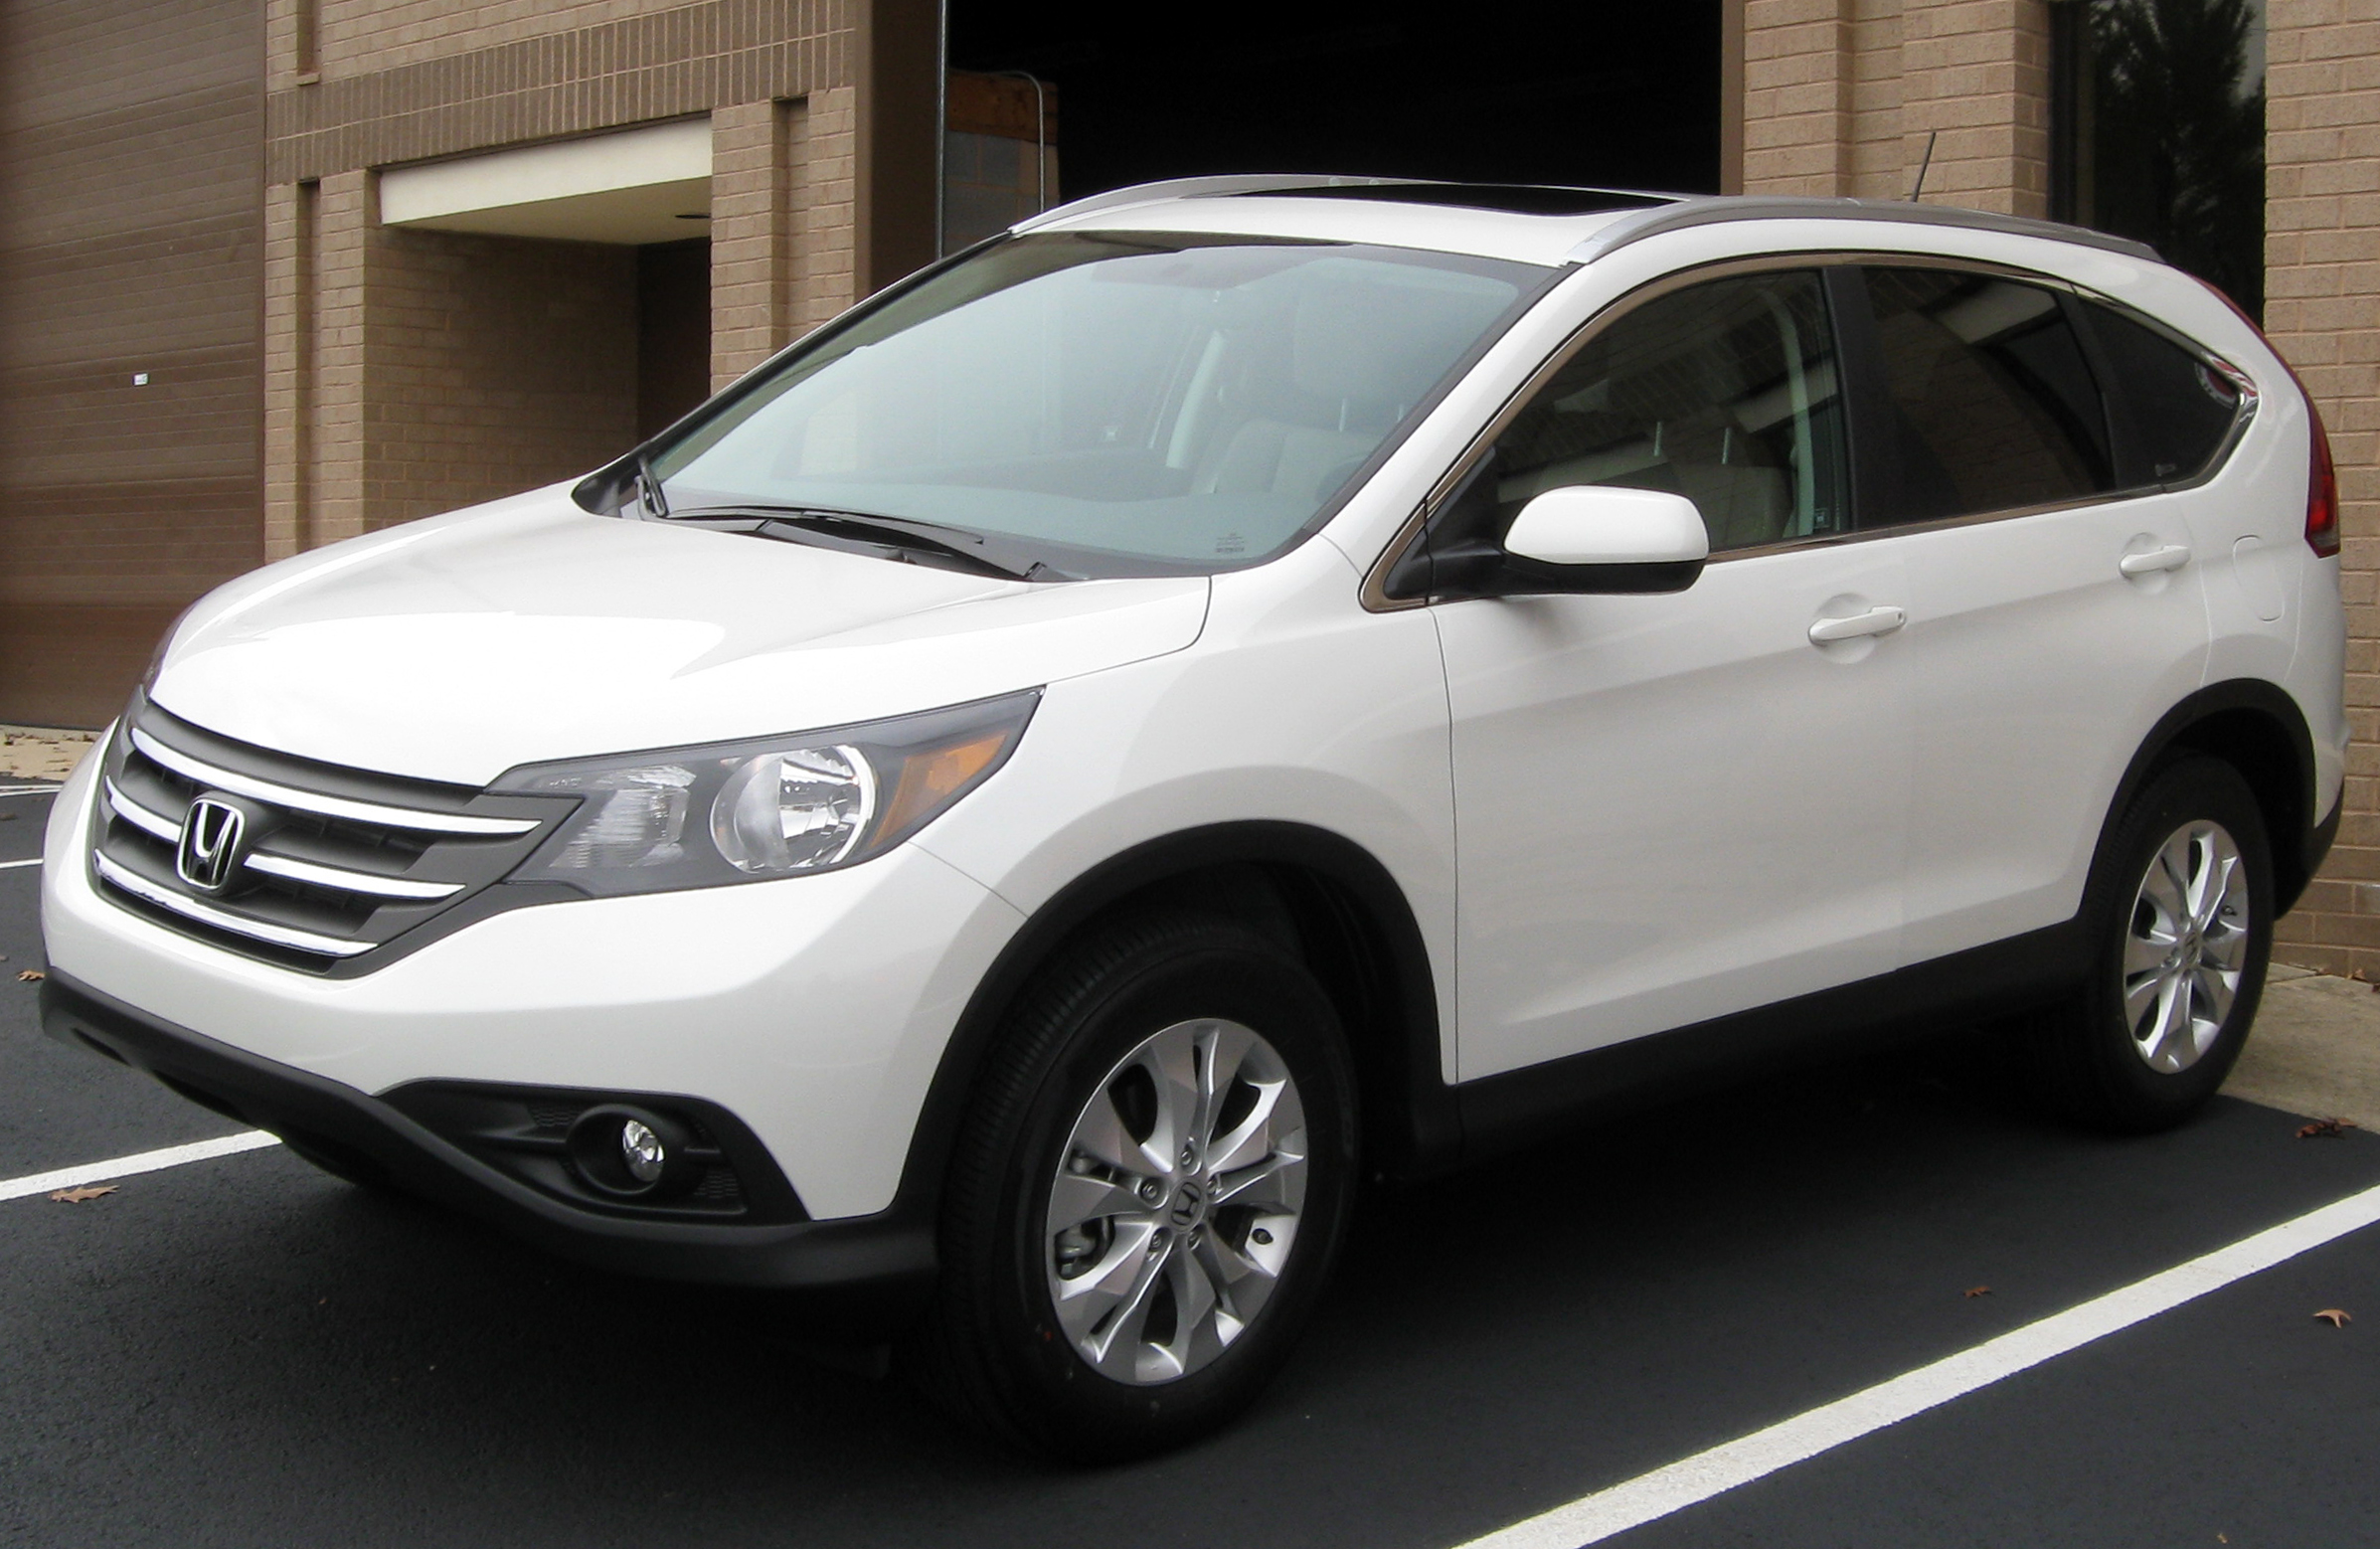 File:2012 Honda CR-V -- 12-29-2011.jpg - Wikimedia Commons